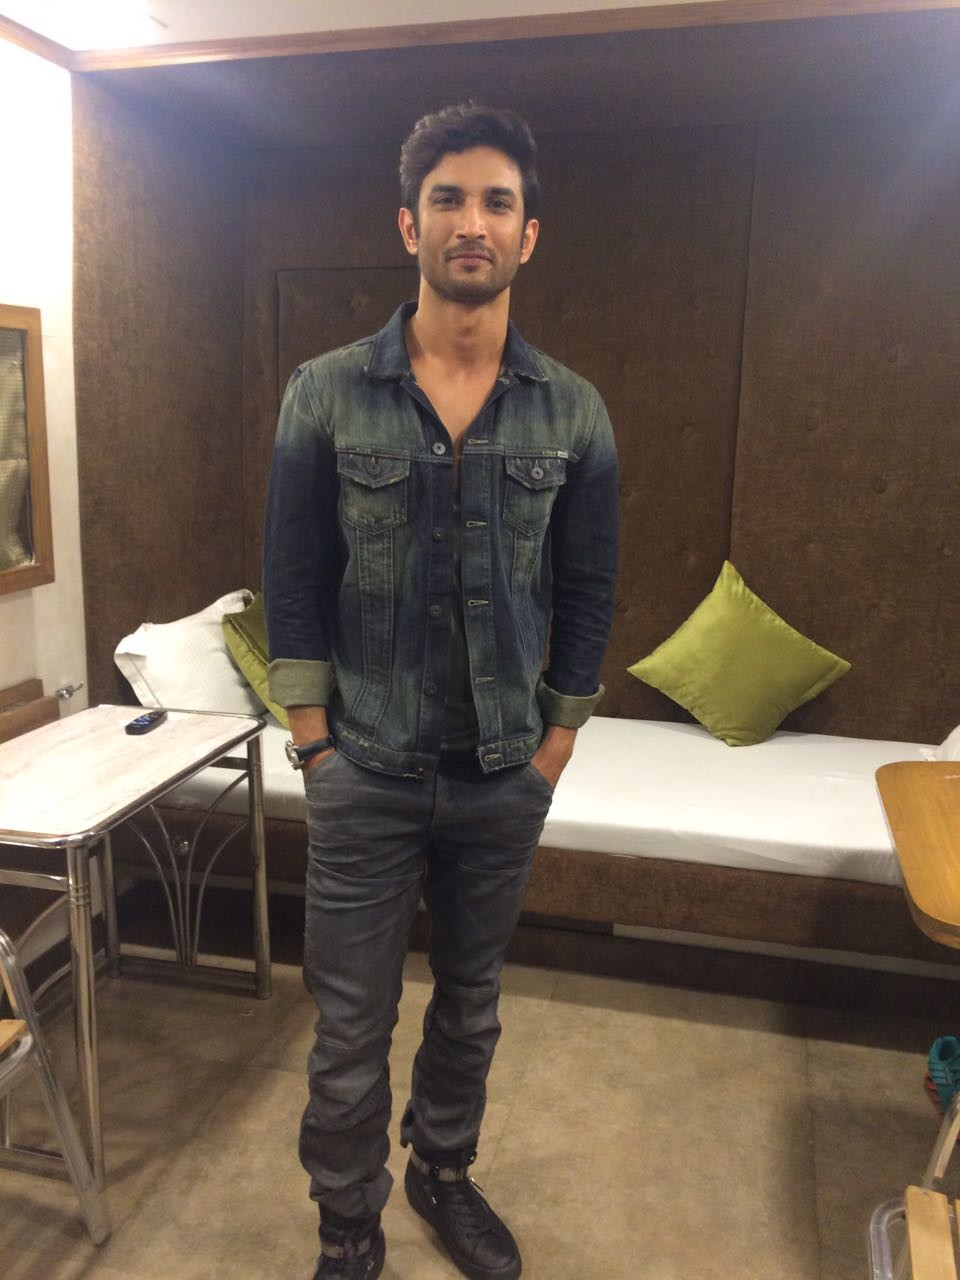 Sushant Singh Rajput,Sushant Singh,Sushant Singh Rajput in G-Star RAW Elwood jeans,Sushant Singh in G-Star RAW Elwood jeans,G-Star RAW Elwood jeans,G-Star RAW Elwood,Sushant Singh Rajput pics,Sushant Singh Rajput images,Sushant Singh Rajput photos,Sushant